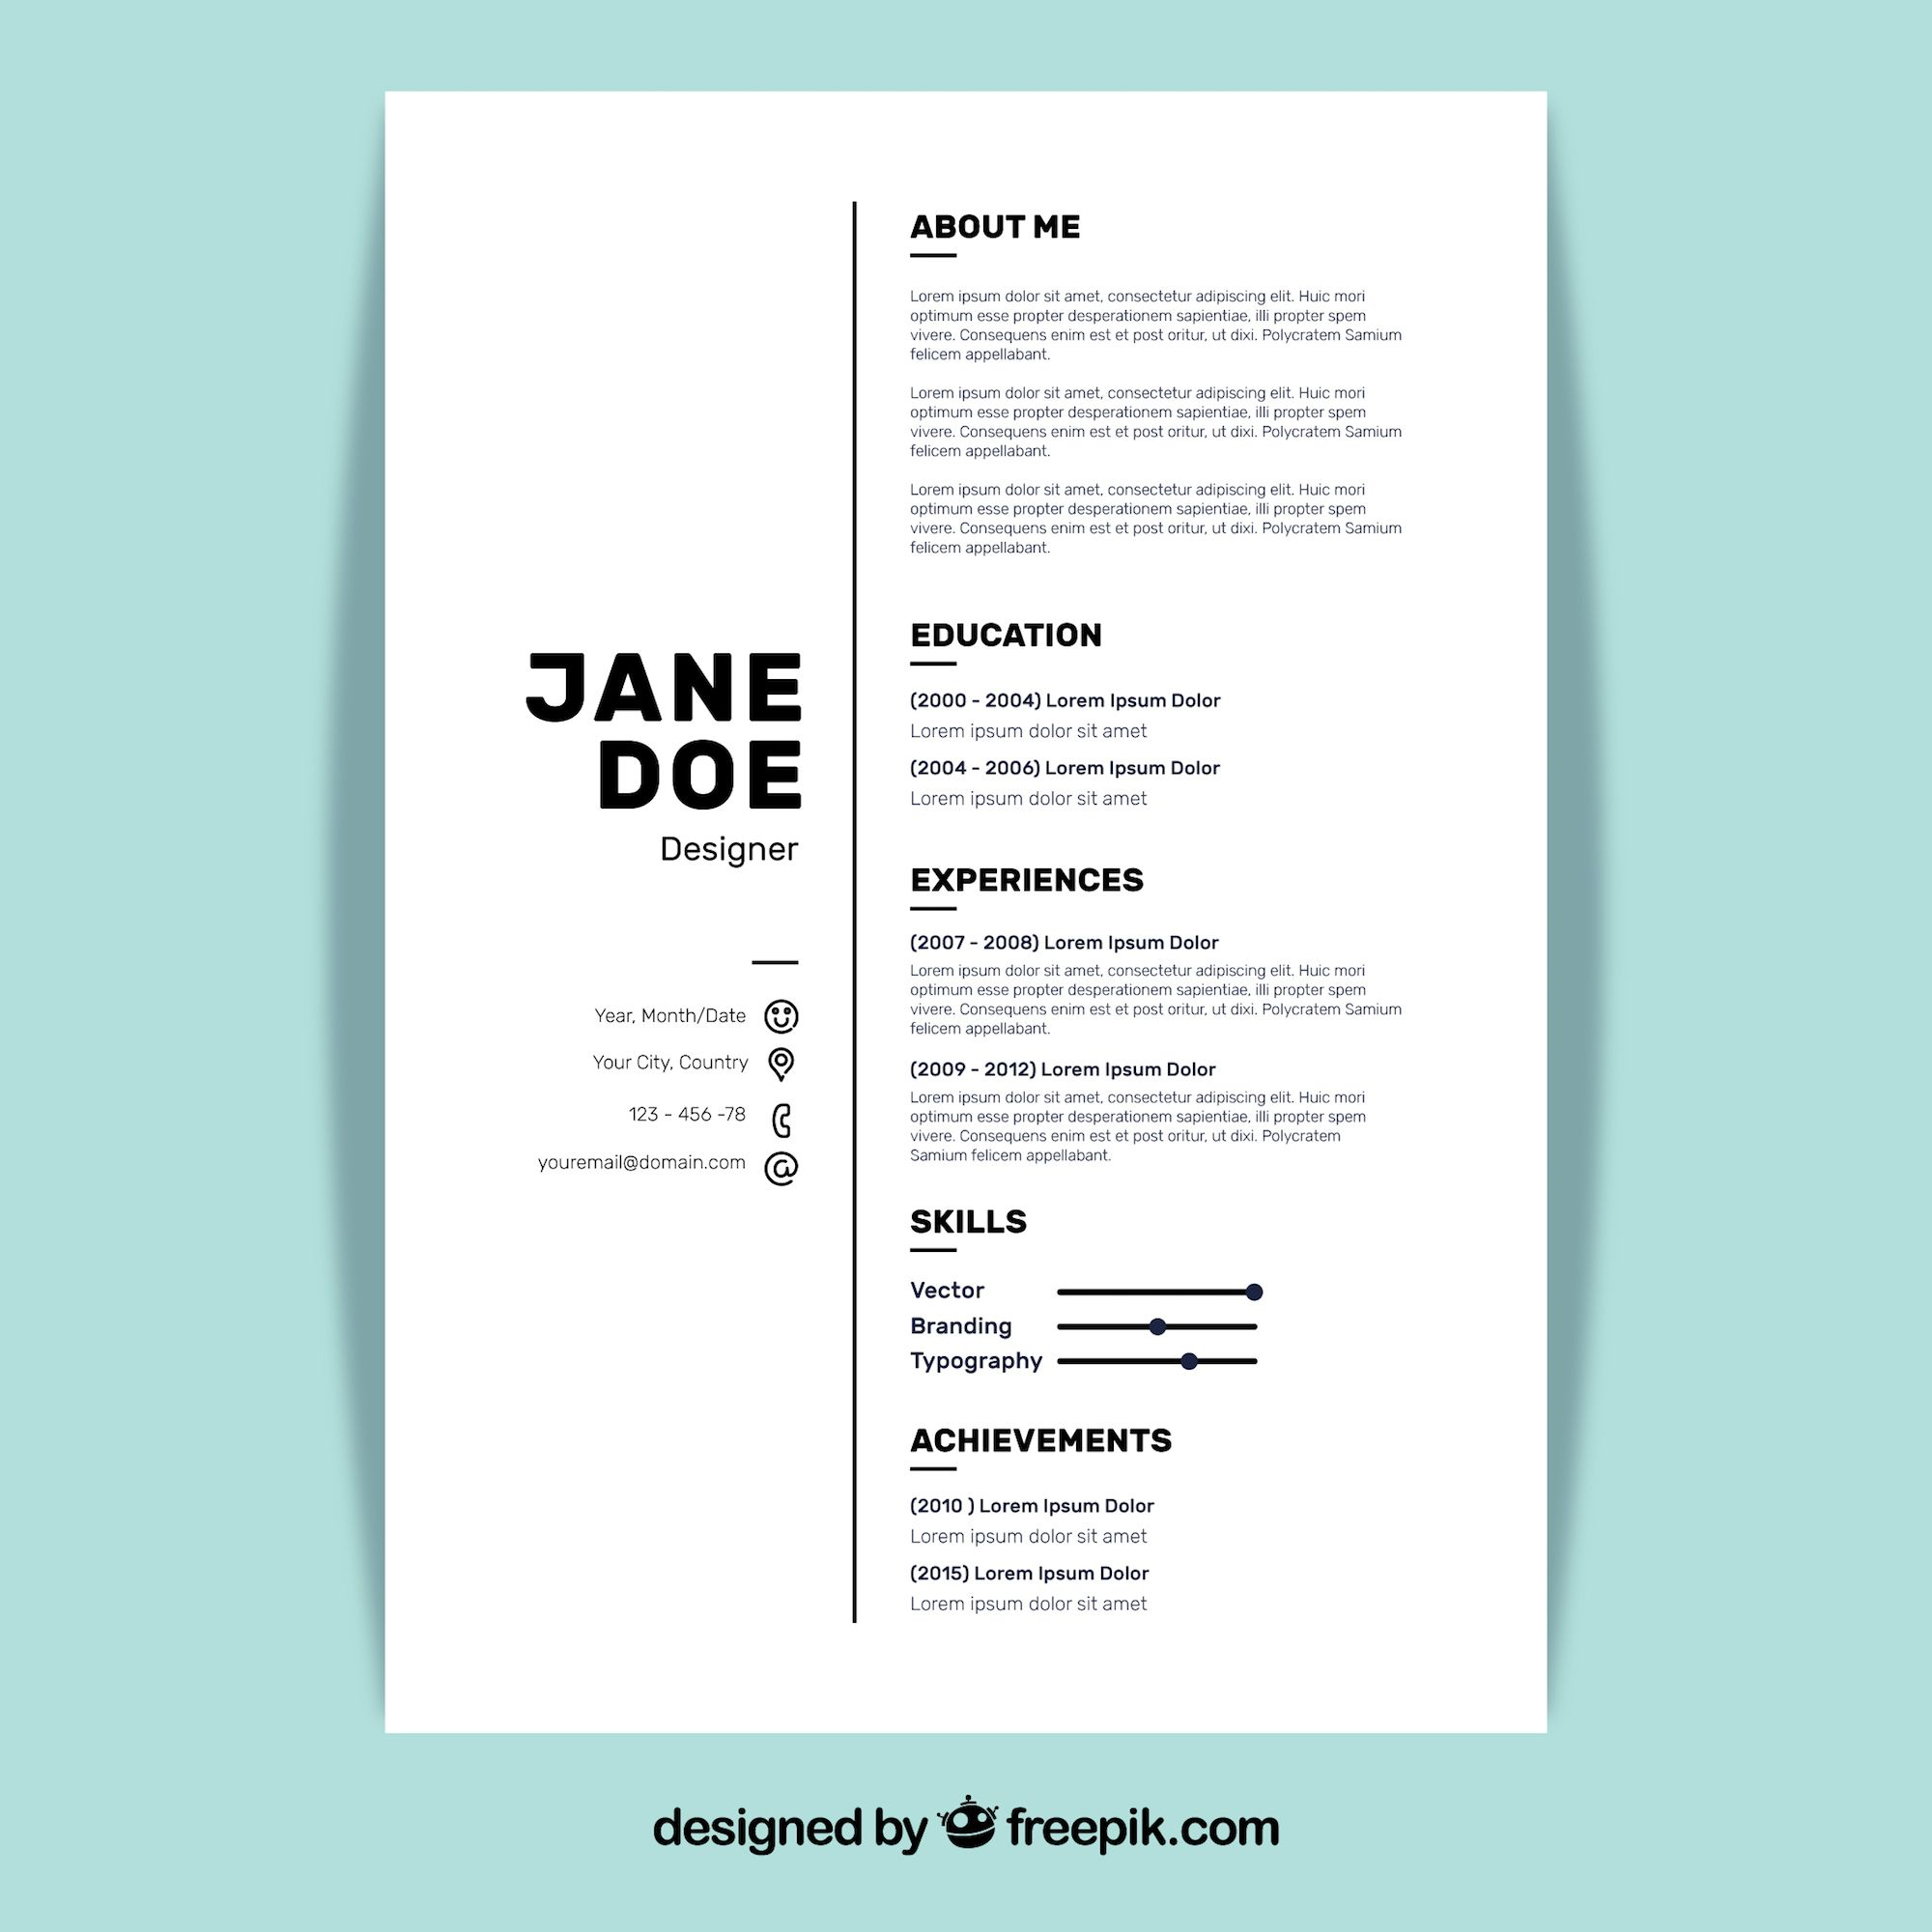 How Many Pages Should An Ideal Resume Be?